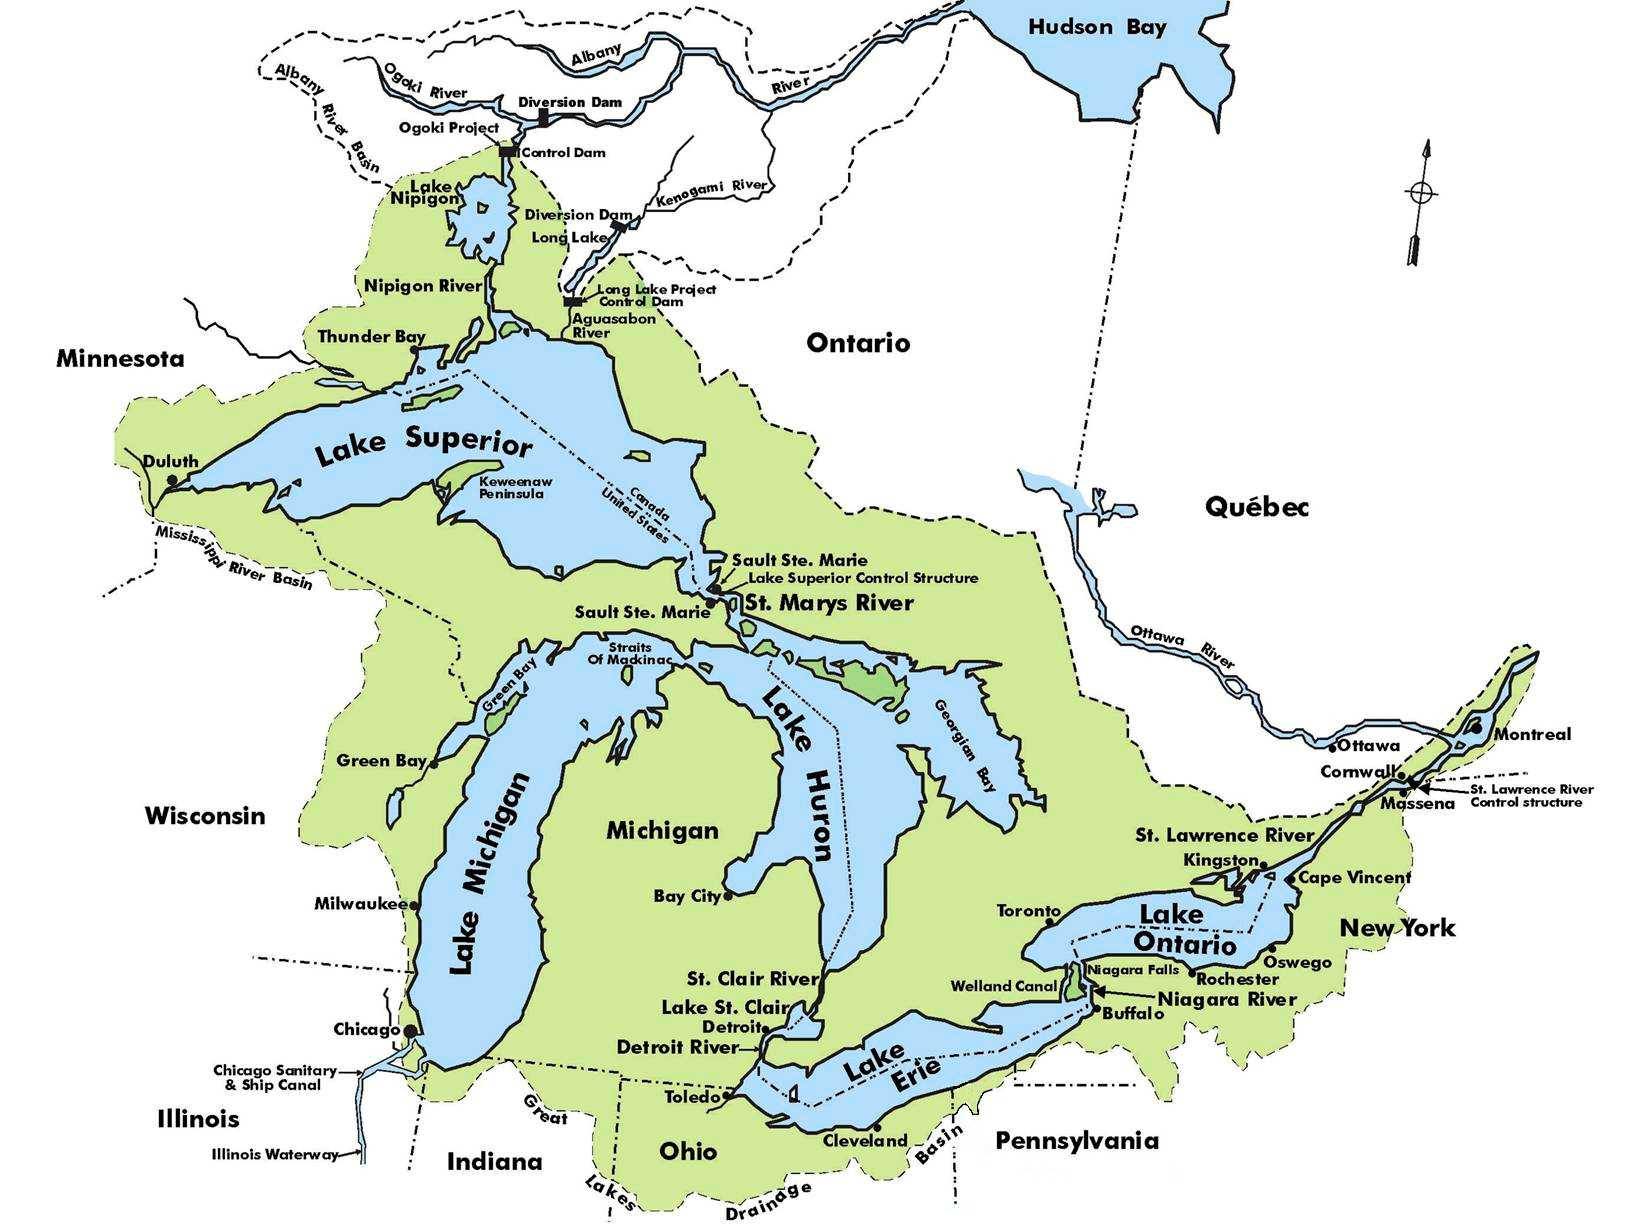 USA Rivers And Lakes Map TEACH Questions Answers Great Lakes Map - Usa map with rivers and lakes